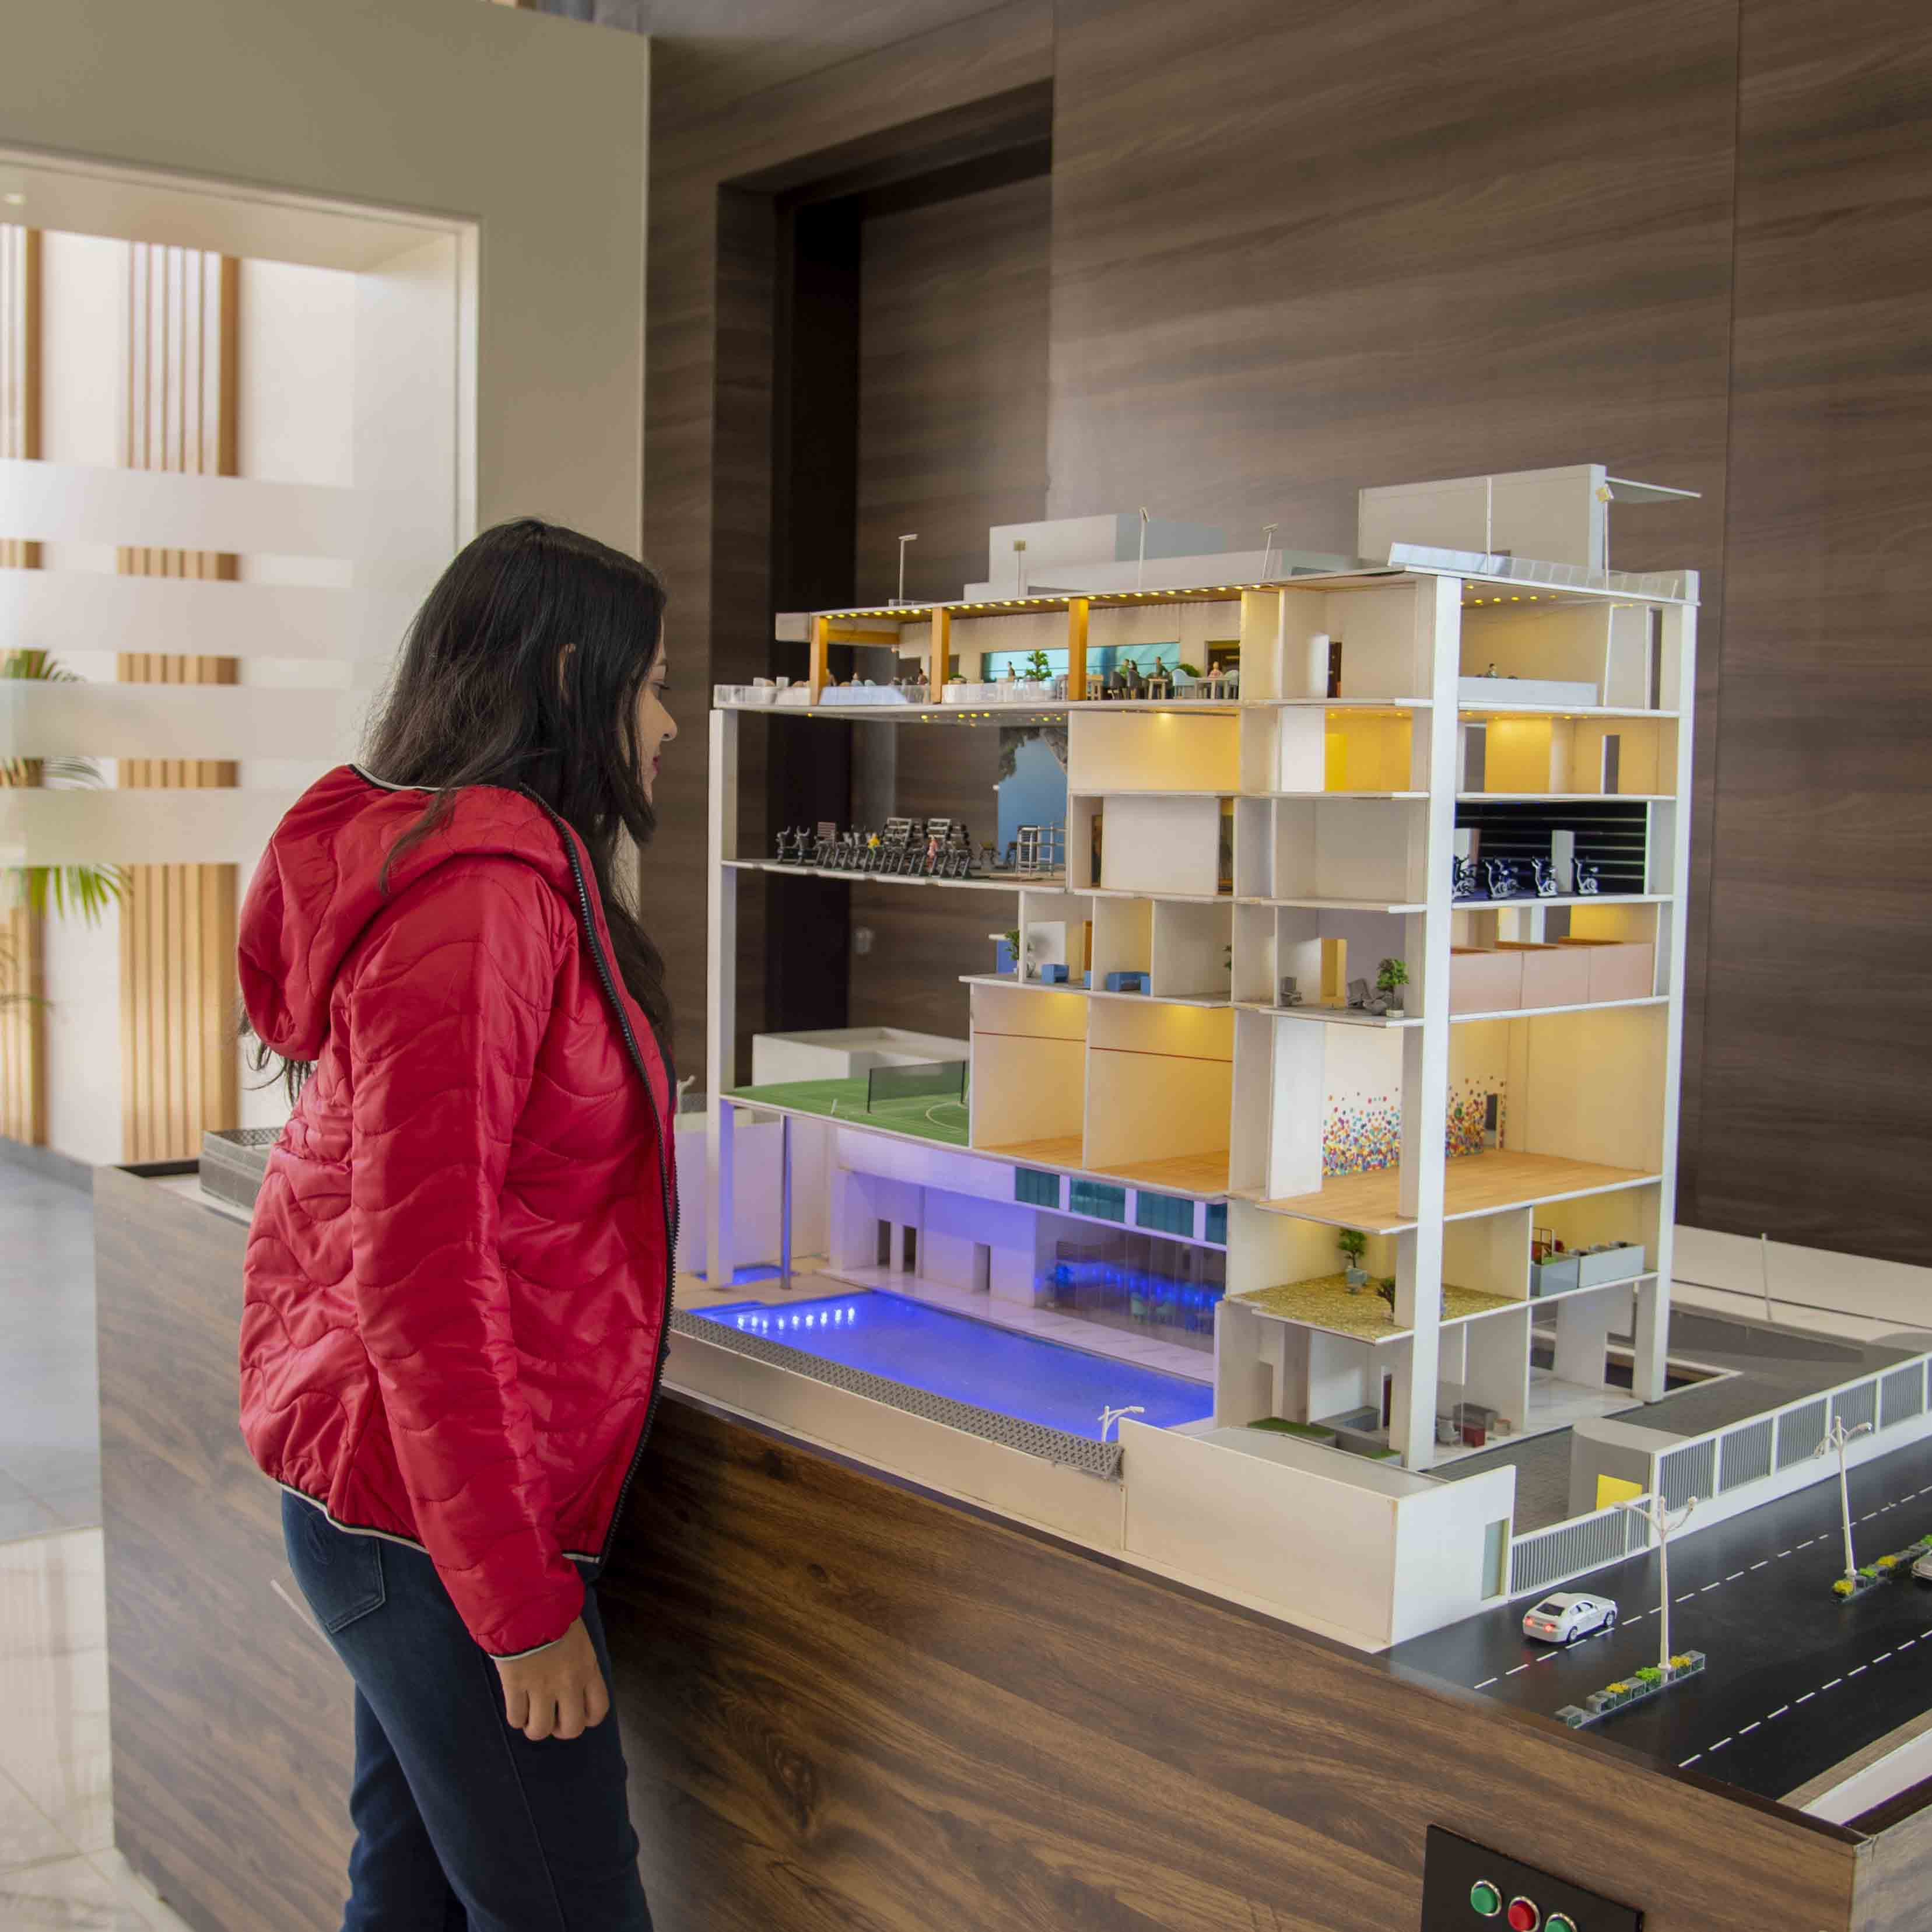 Shelf,Shelving,Furniture,Yellow,Architecture,Room,Cabinetry,Interior design,Design,Building